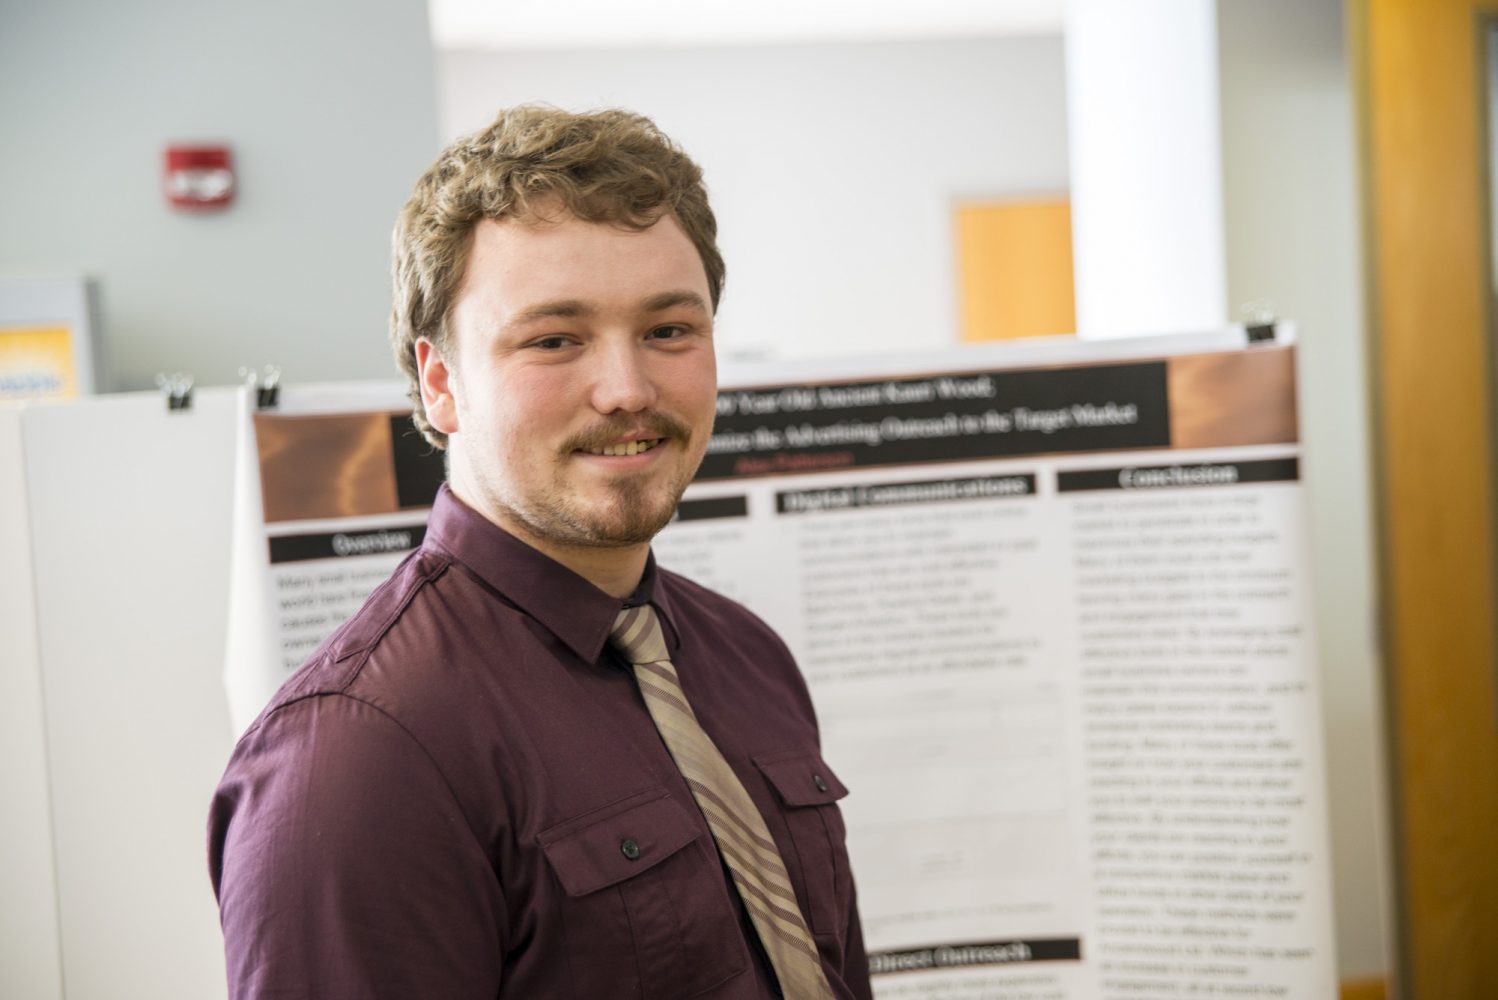 Student at poster session.